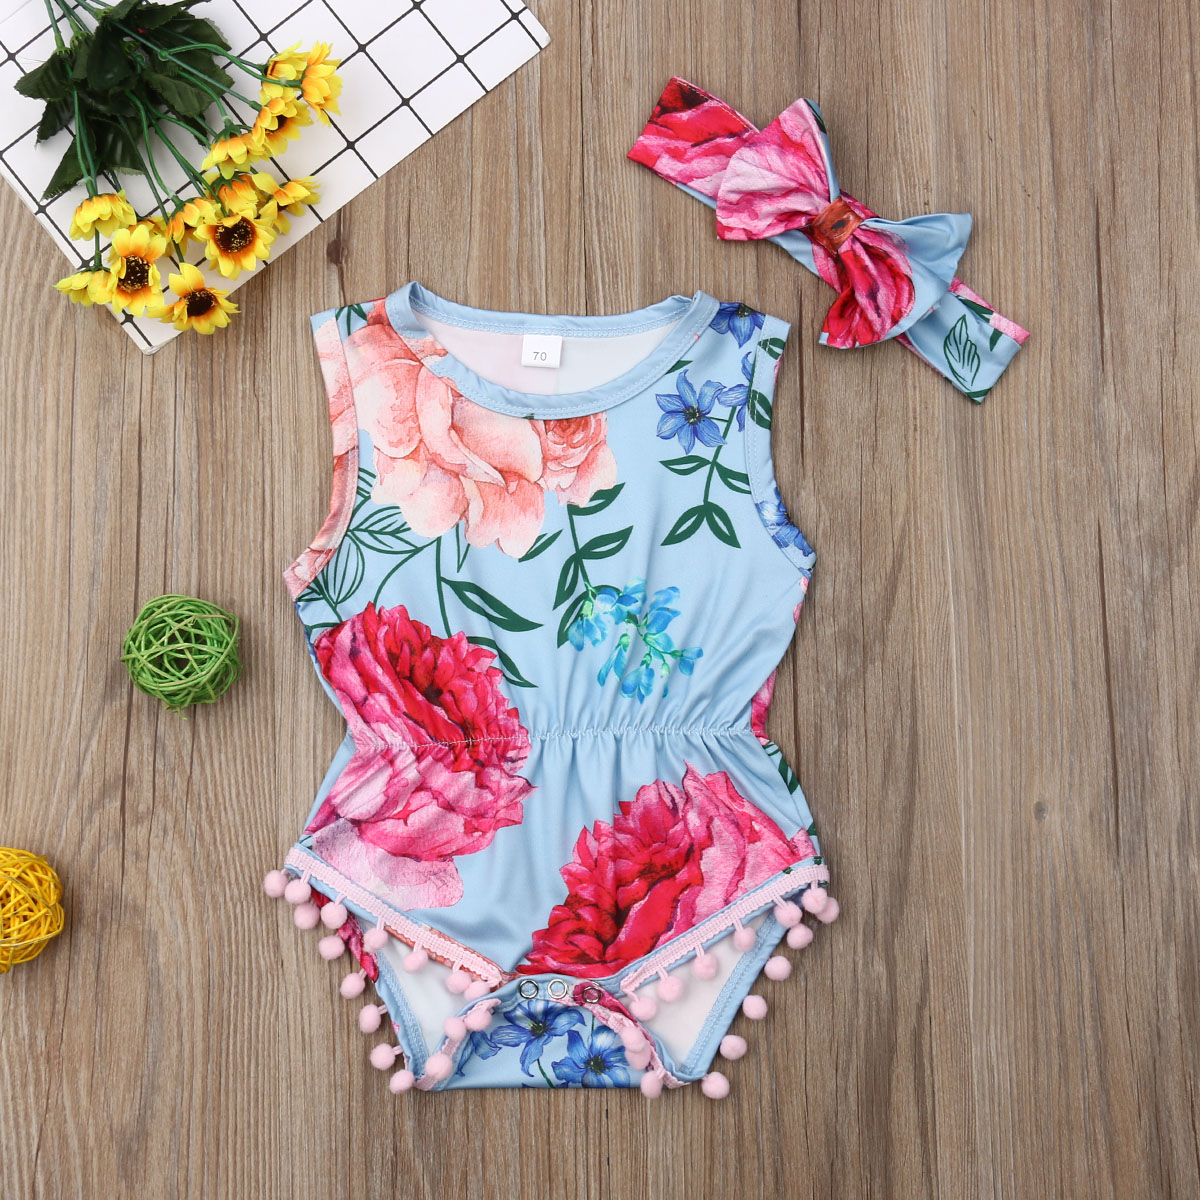 Emmababy Newest Fashion Newborn Baby Girl Clothes Sleeveless Flower Print Tassels Romper Jumpsuit Headband 2Pcs Outfits Clothes